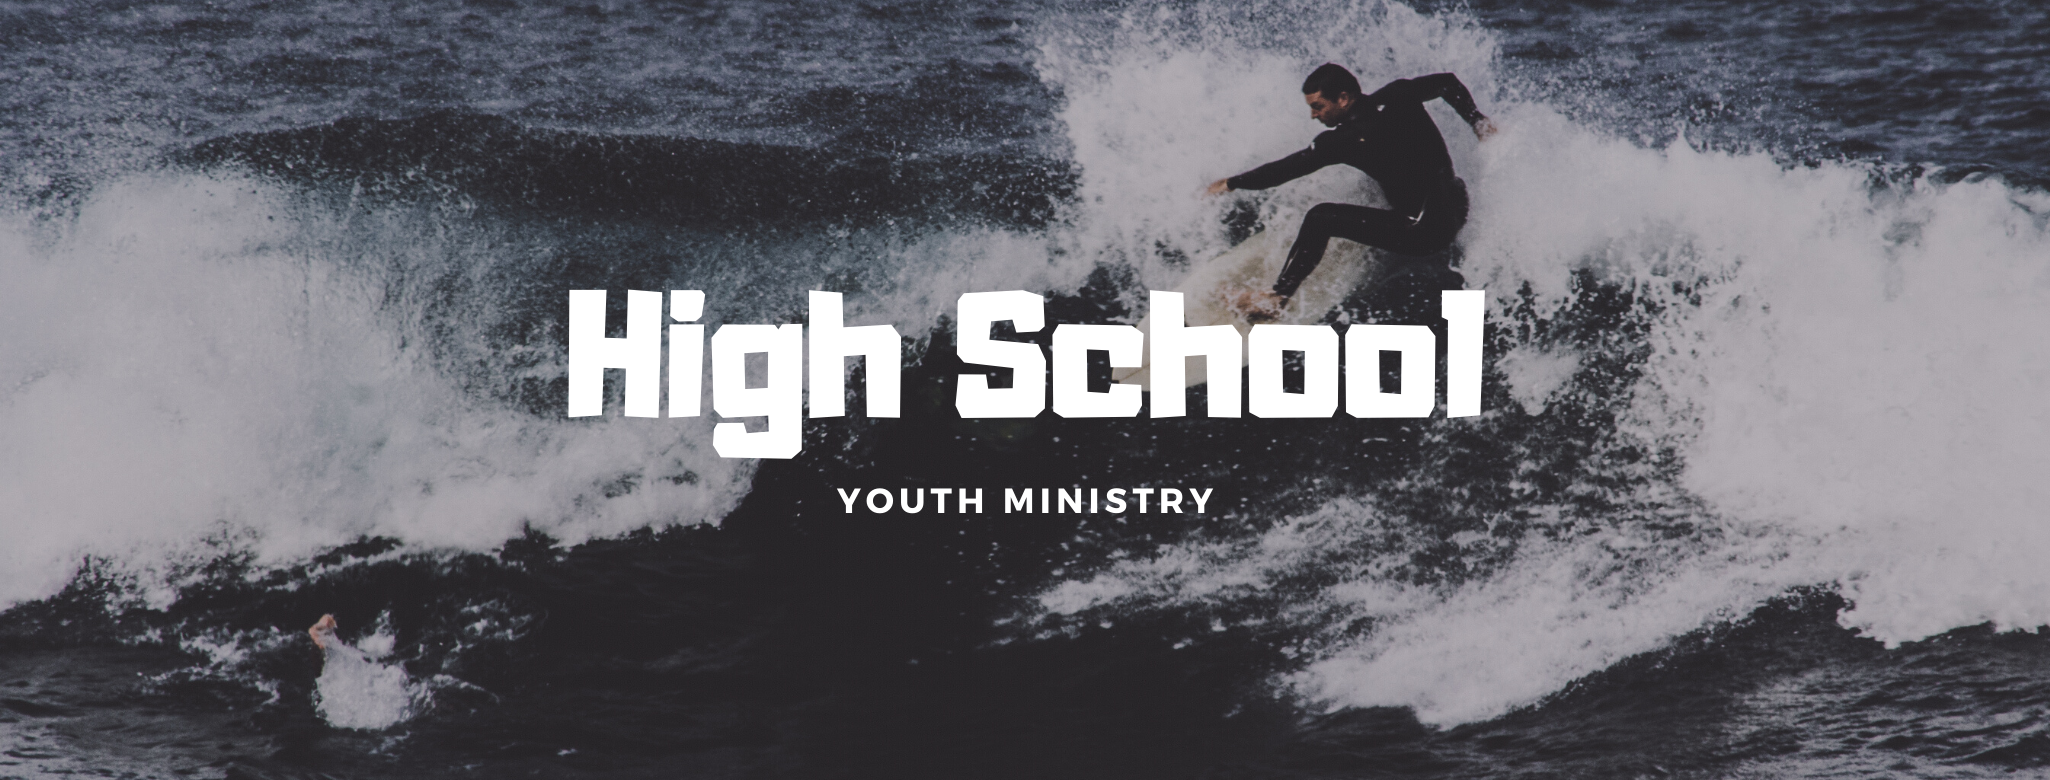 High school youth ministry spring button